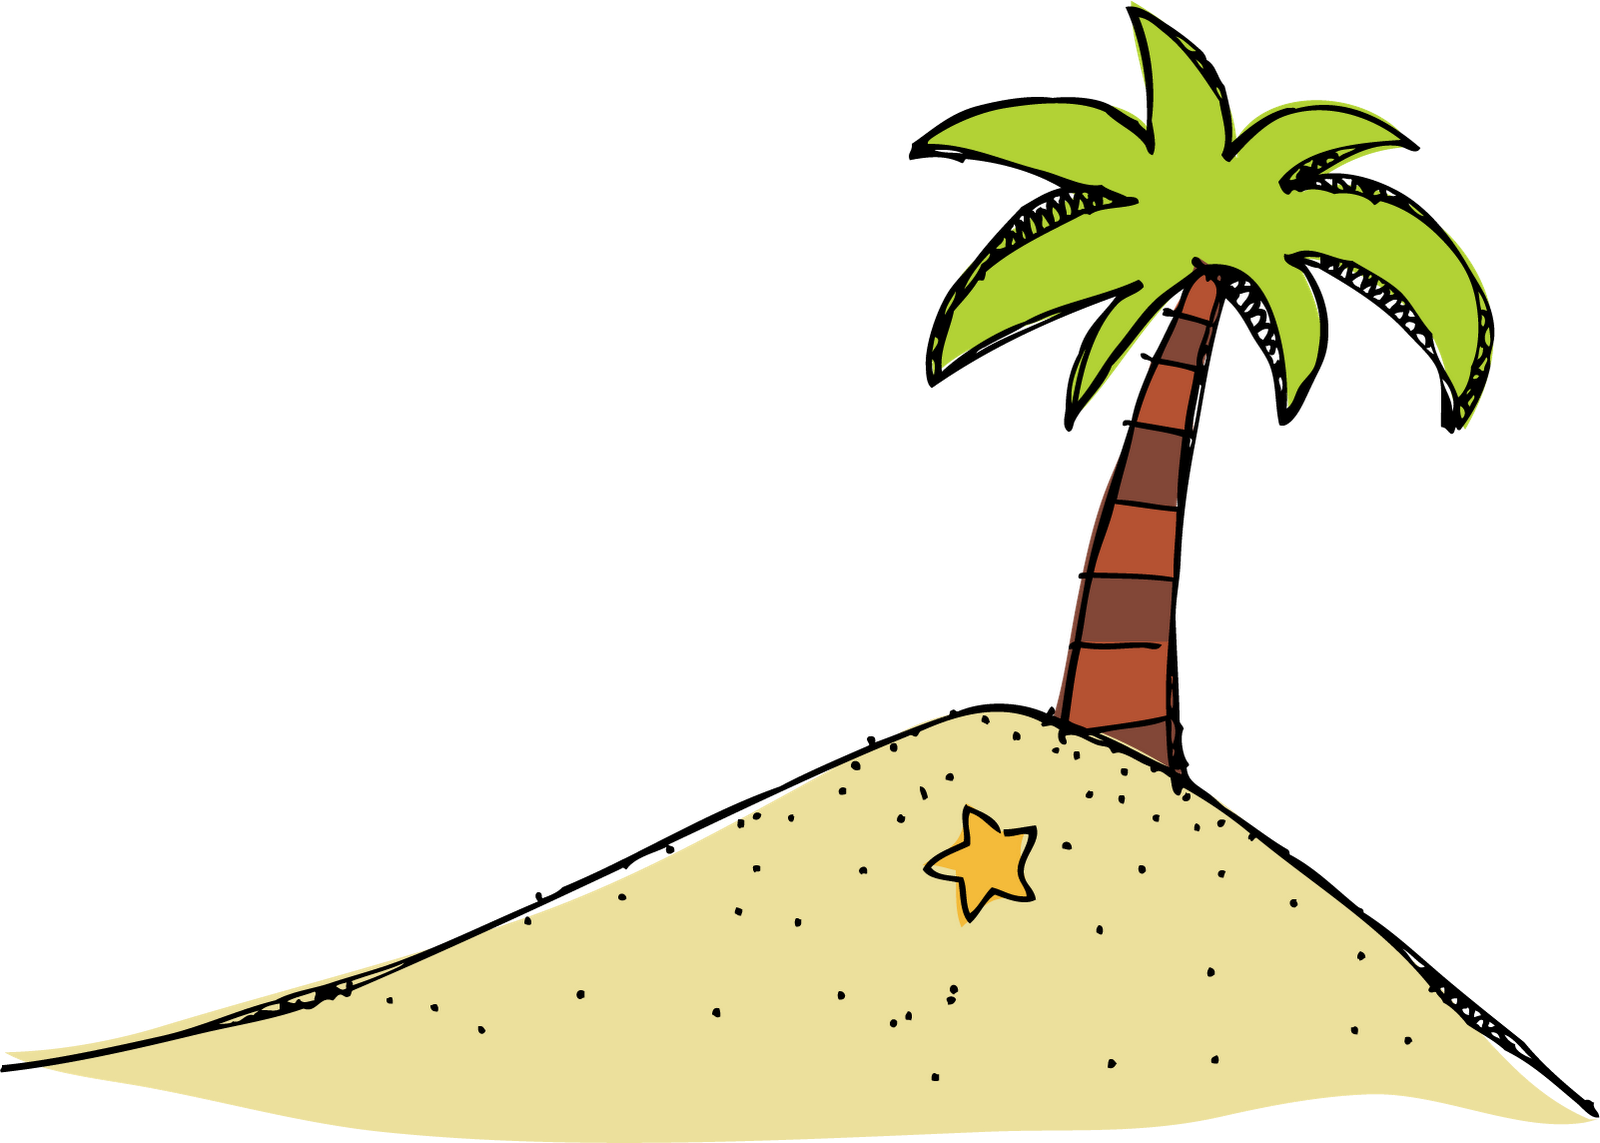 Island Clipart & Island Clip Art Images.